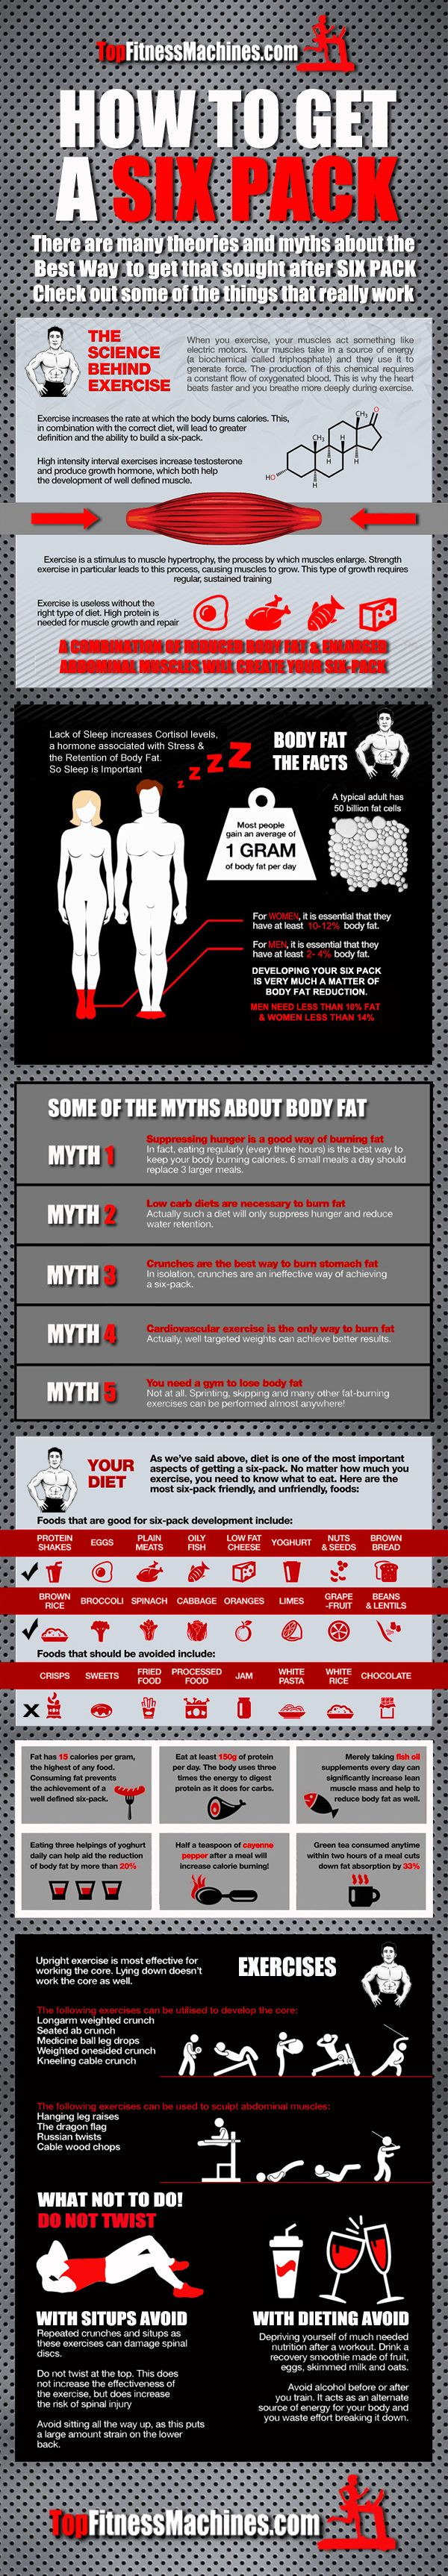 How to Build Your Abs & Get a Six Pack. Infographic with Tips and Dispelling some Myths www.TopFitnessMachines.com #six_pack #fitness #Abs_Training